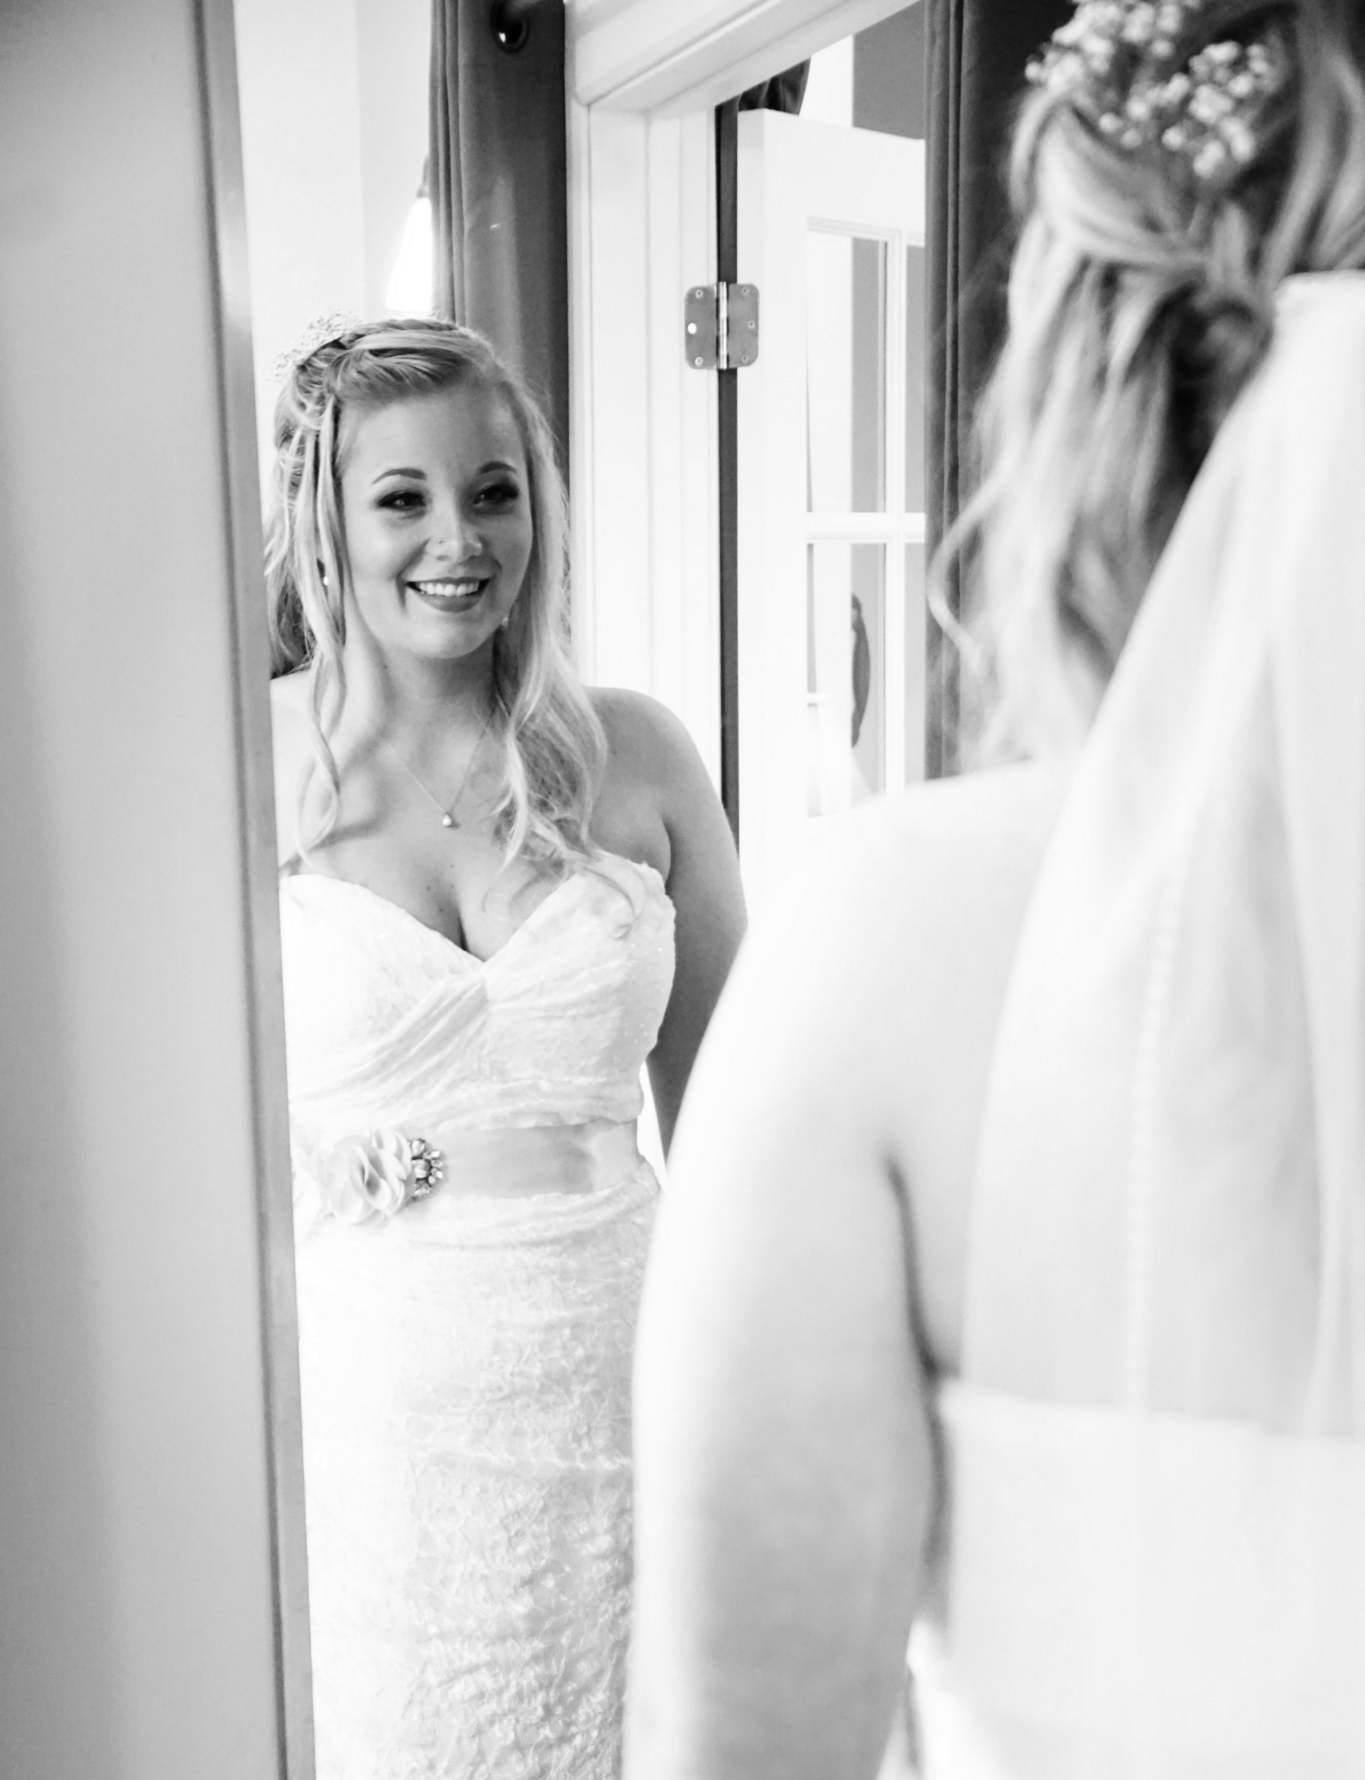 Your Makeup Artist will provide you with two different wedding day looks at your trial appointment, and will meet you on location the day of your wedding to complete the look of your choice! Your artist will ensure your makeup is set and ready to go for your big day! Your look will include a full application of makeup and strip false lashes, although I do recommend brides purchase mink lashes to use for their trial run and wedding day, for a soft, dramatic look. I also recommend brides purchase their own lip product for reapplication, but I will happily apply the lip product from my kit that completes your look!